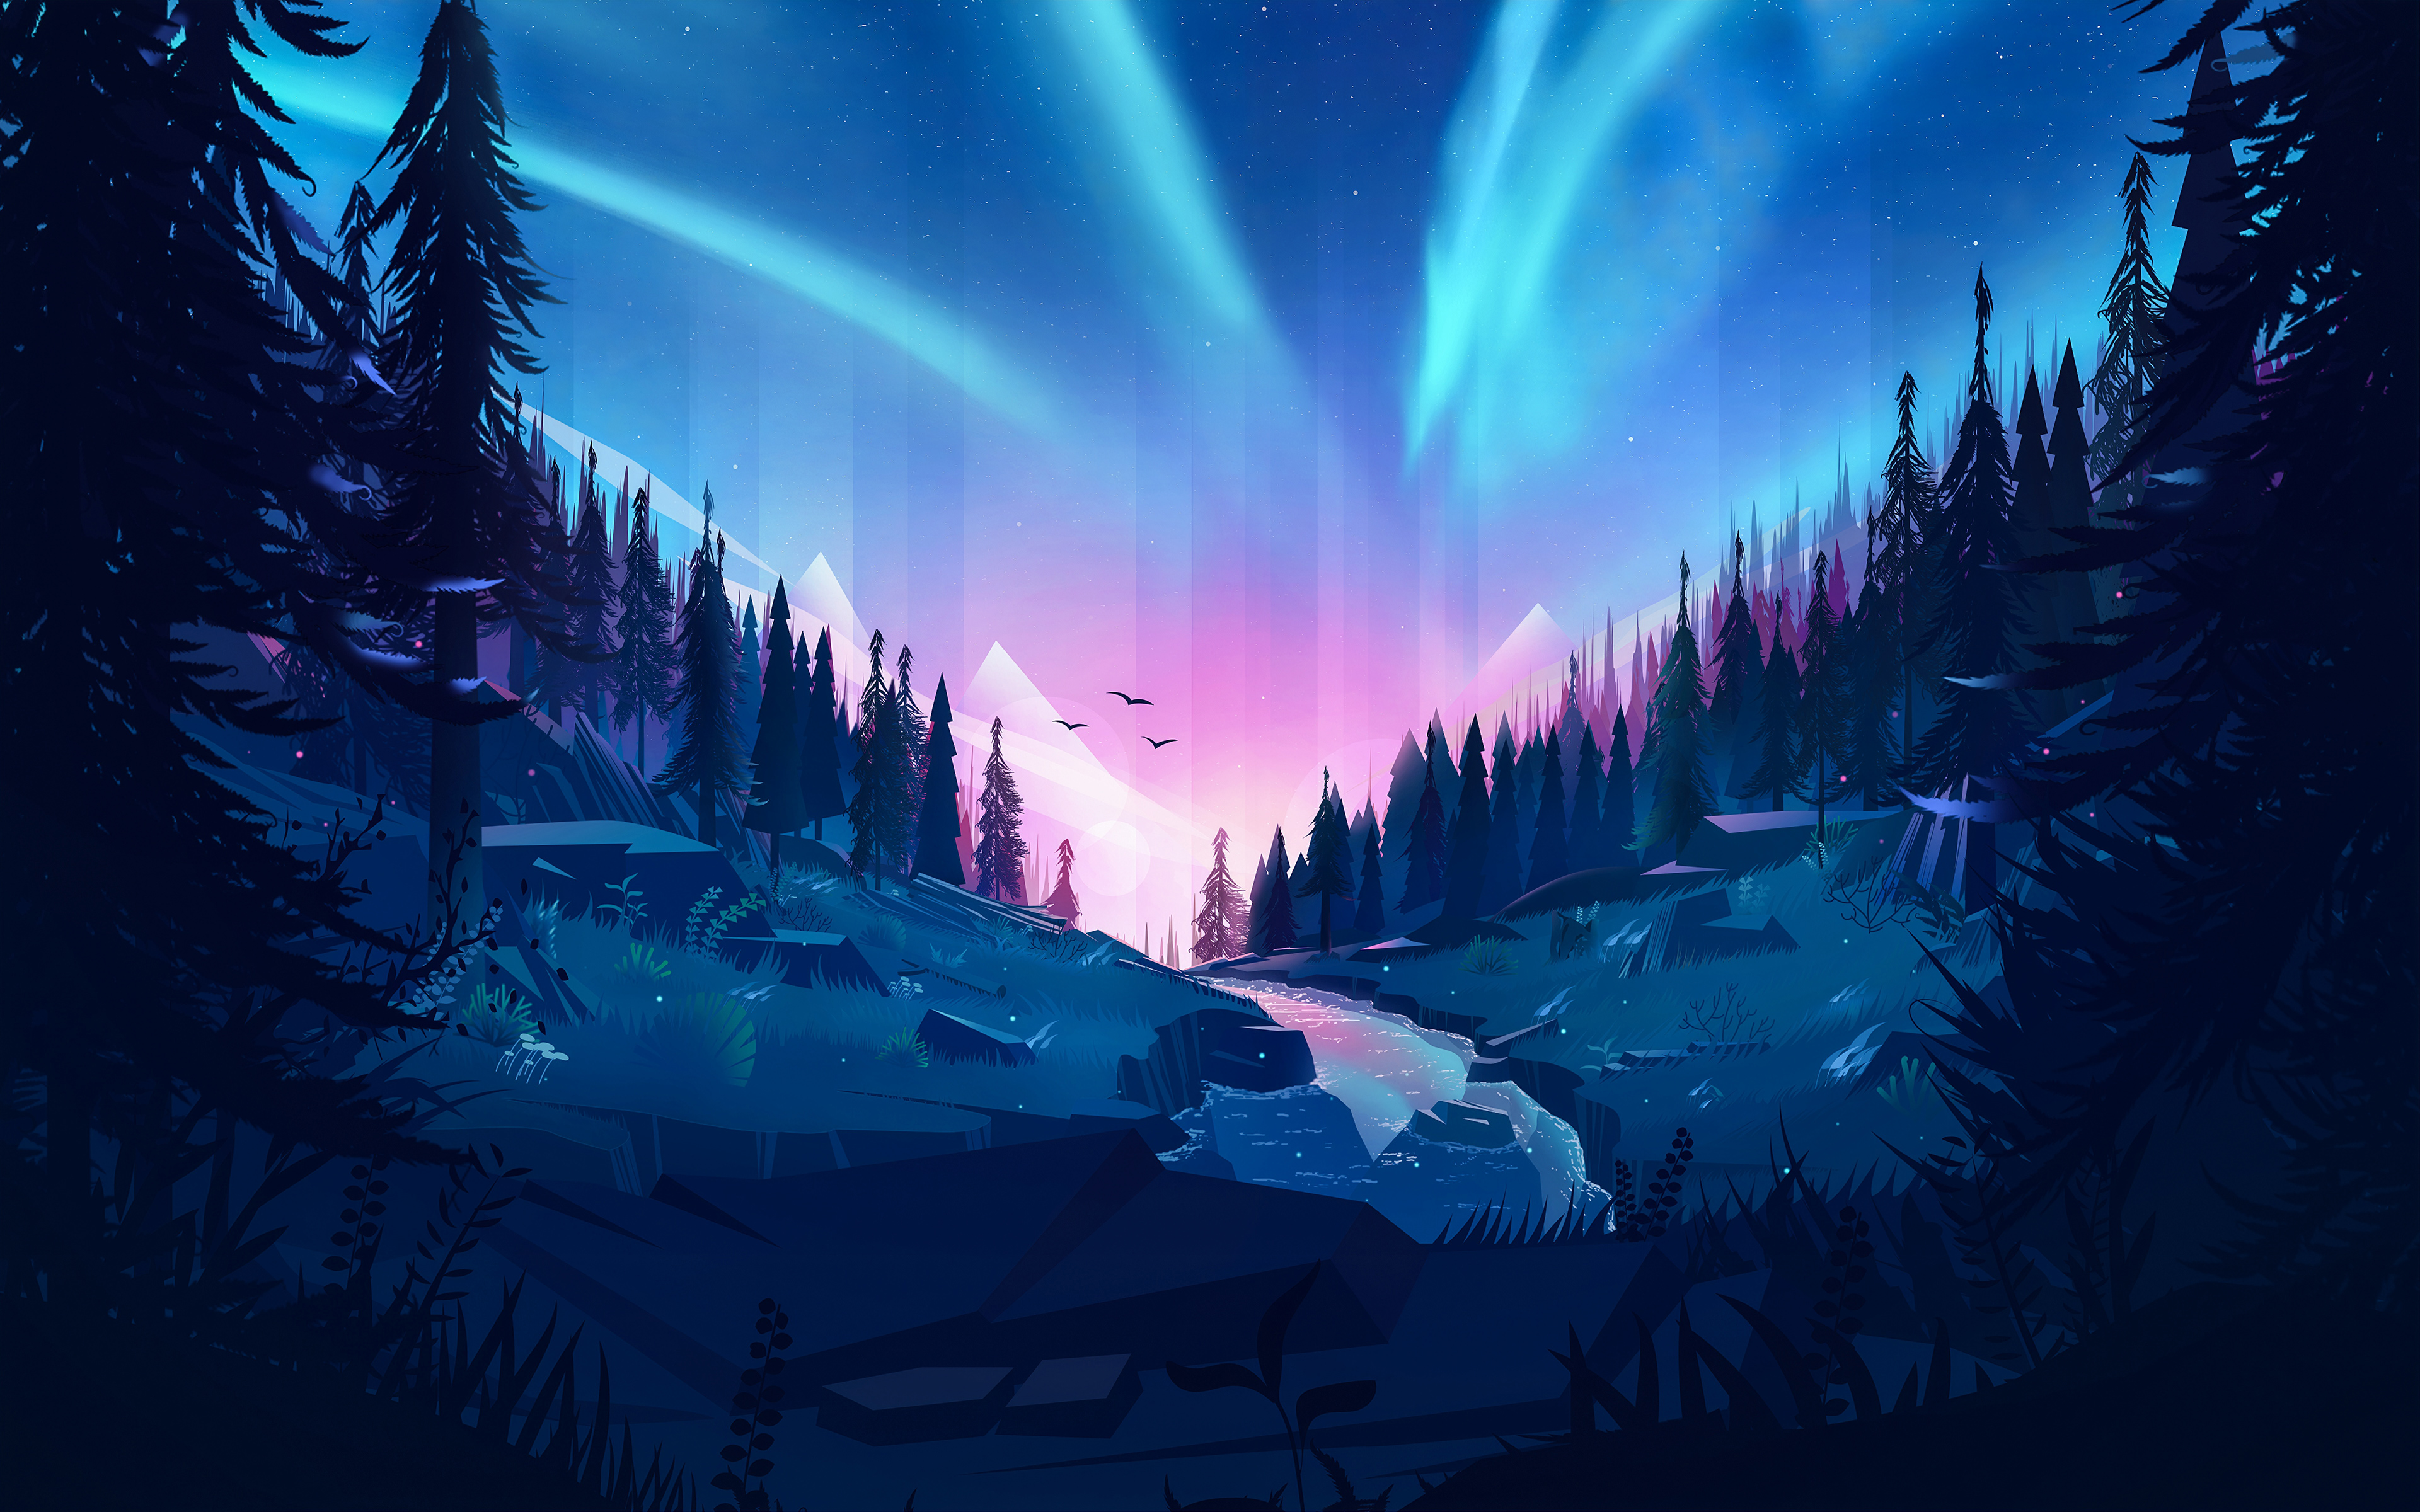 Auroral 4K wallpapers for your desktop or mobile screen ...